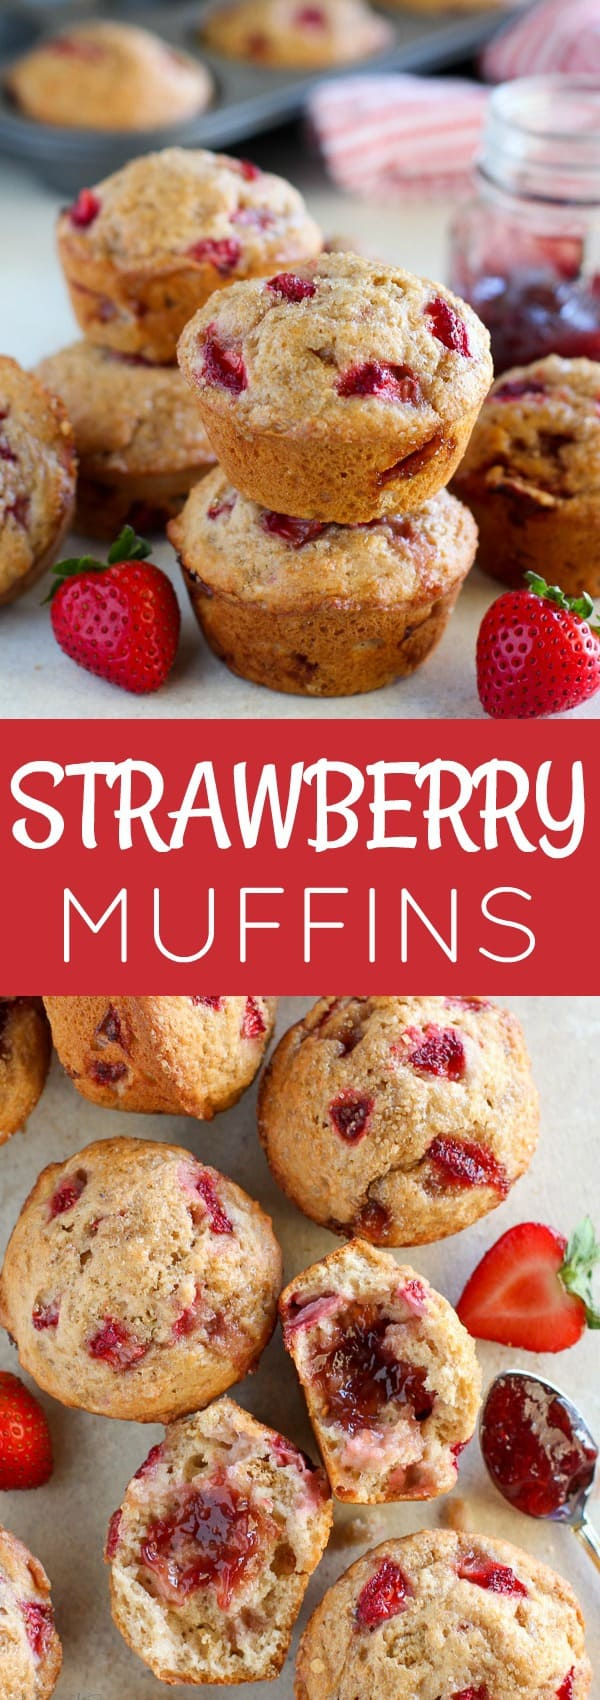 Strawberry Muffins - Moist and tender muffins filled with strawberry yogurt, fresh strawberries and strawberry jam. A wholesome breakfast to start your day!